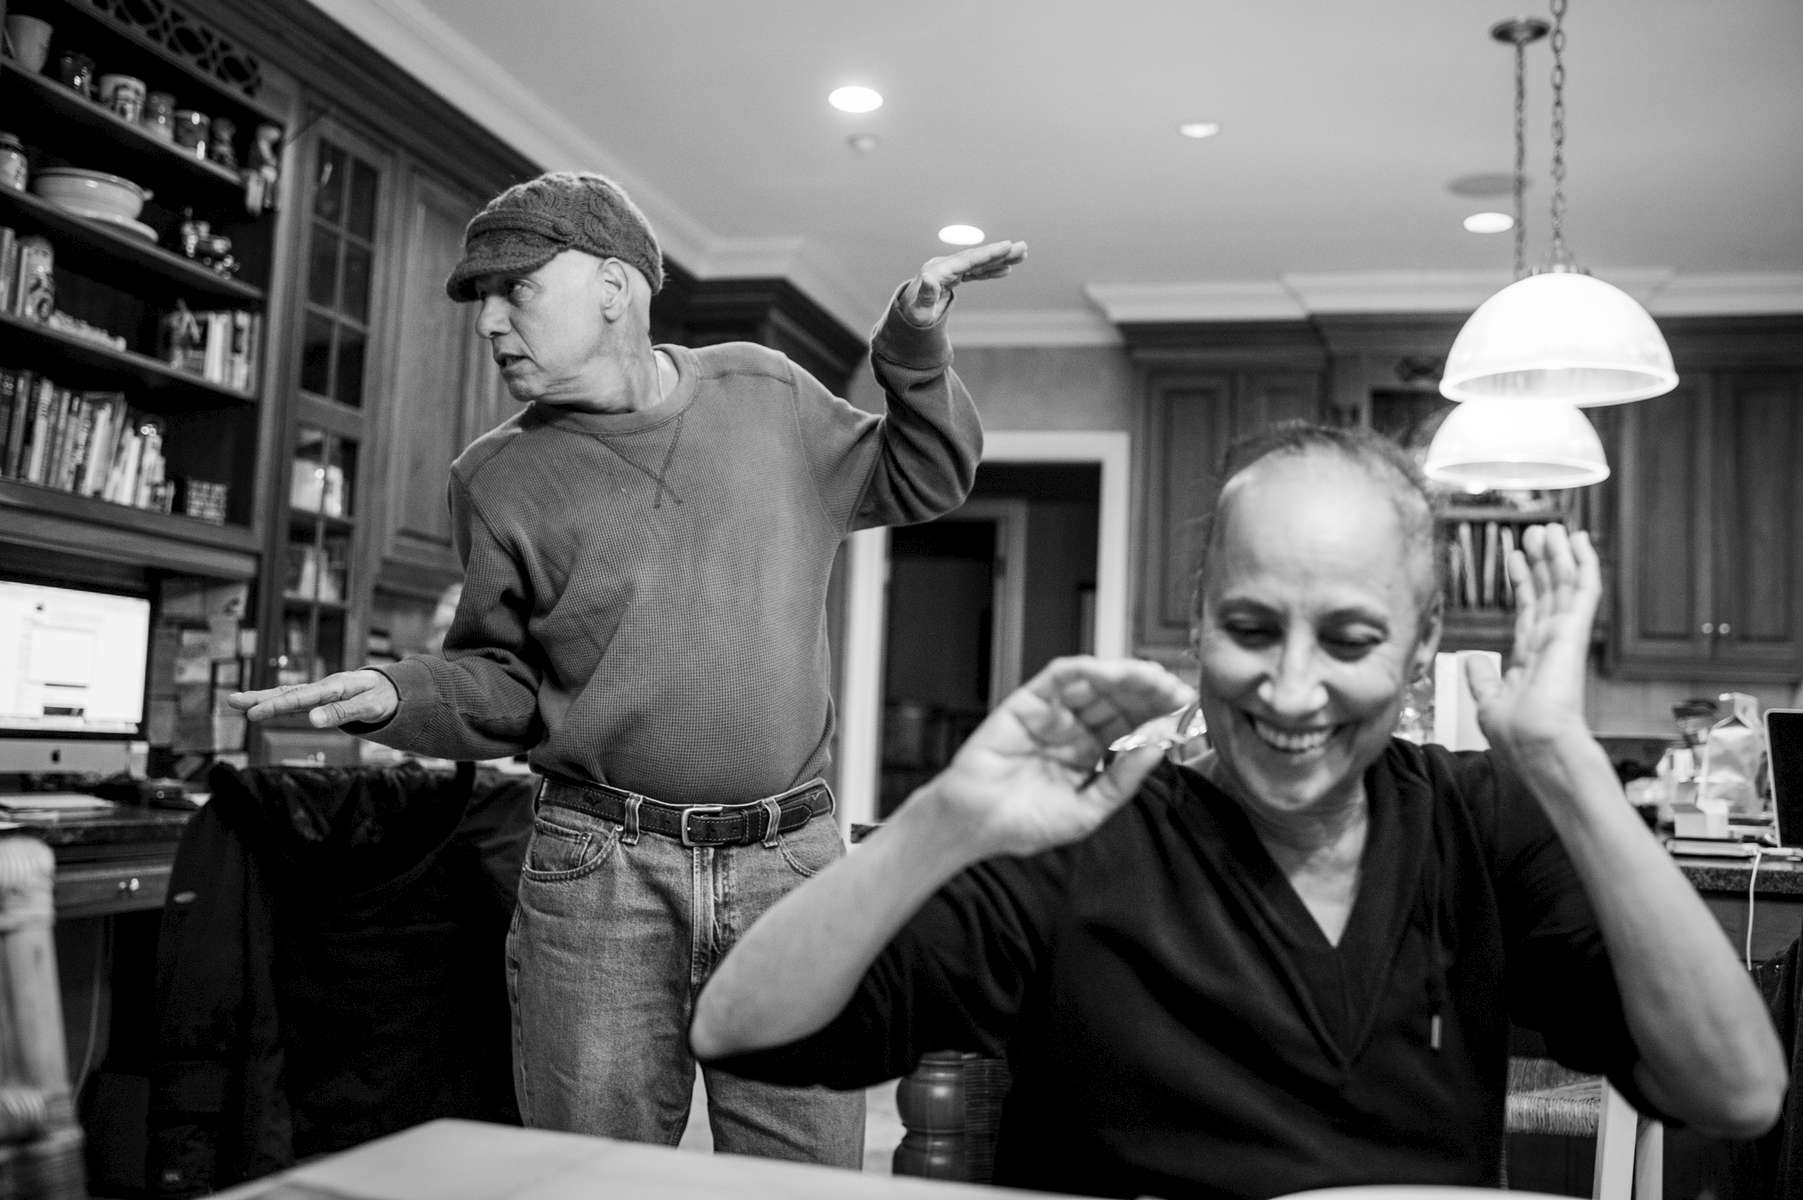 Dad always knew how to make Mom laugh. Even when he was feeling completely terrible after seven hours of chemotherapy, he could still bust-a-move and get a smile out of her. Chappaqua, New York. February, 2013.